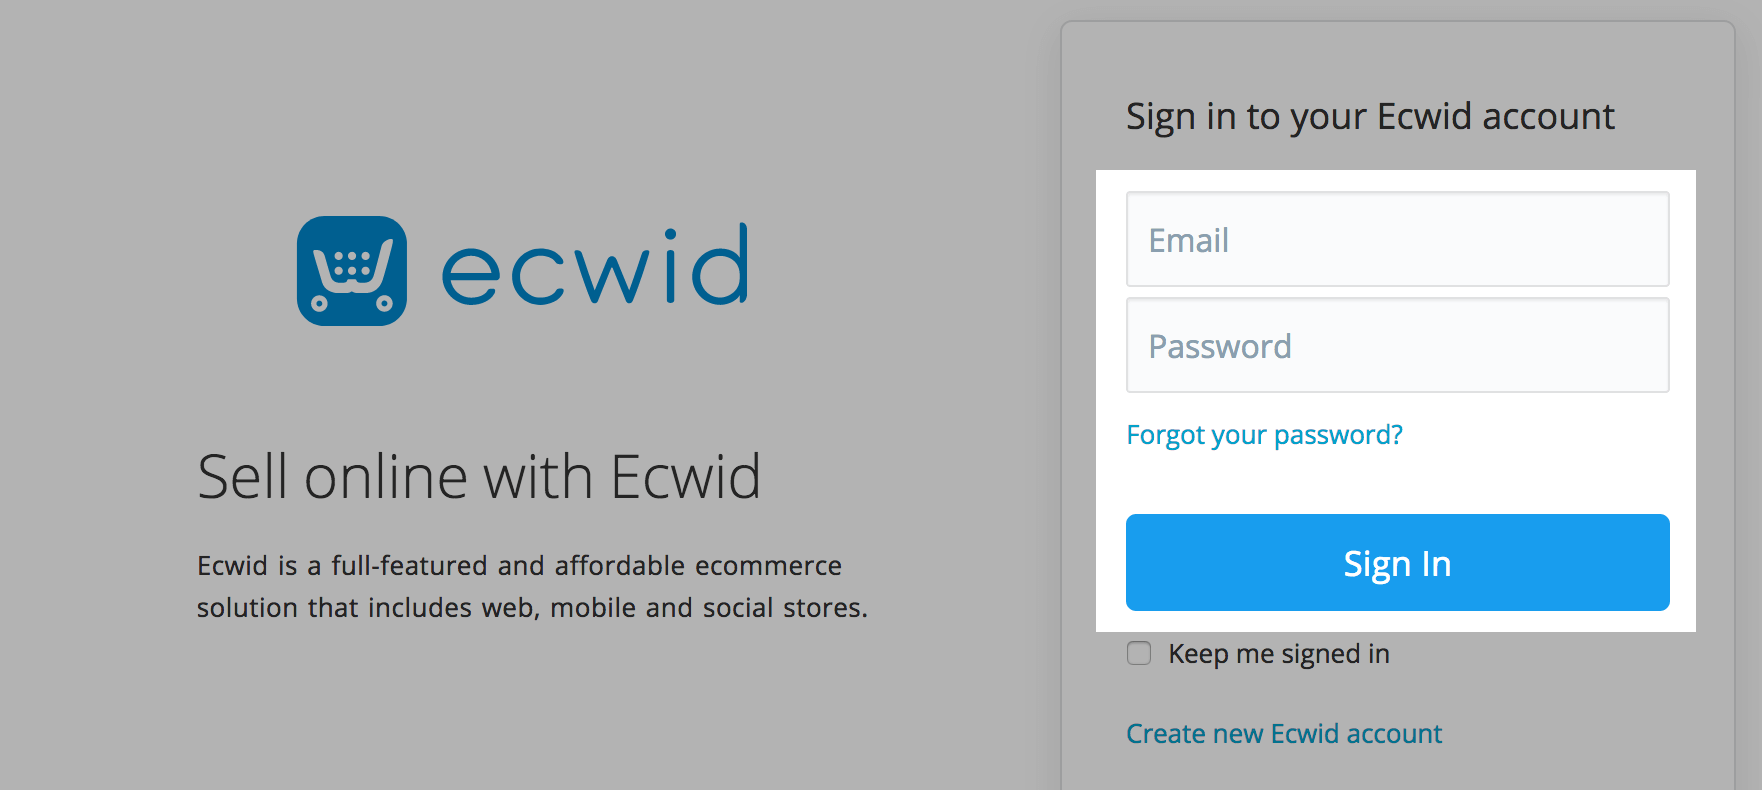 Sign in to Ecwid